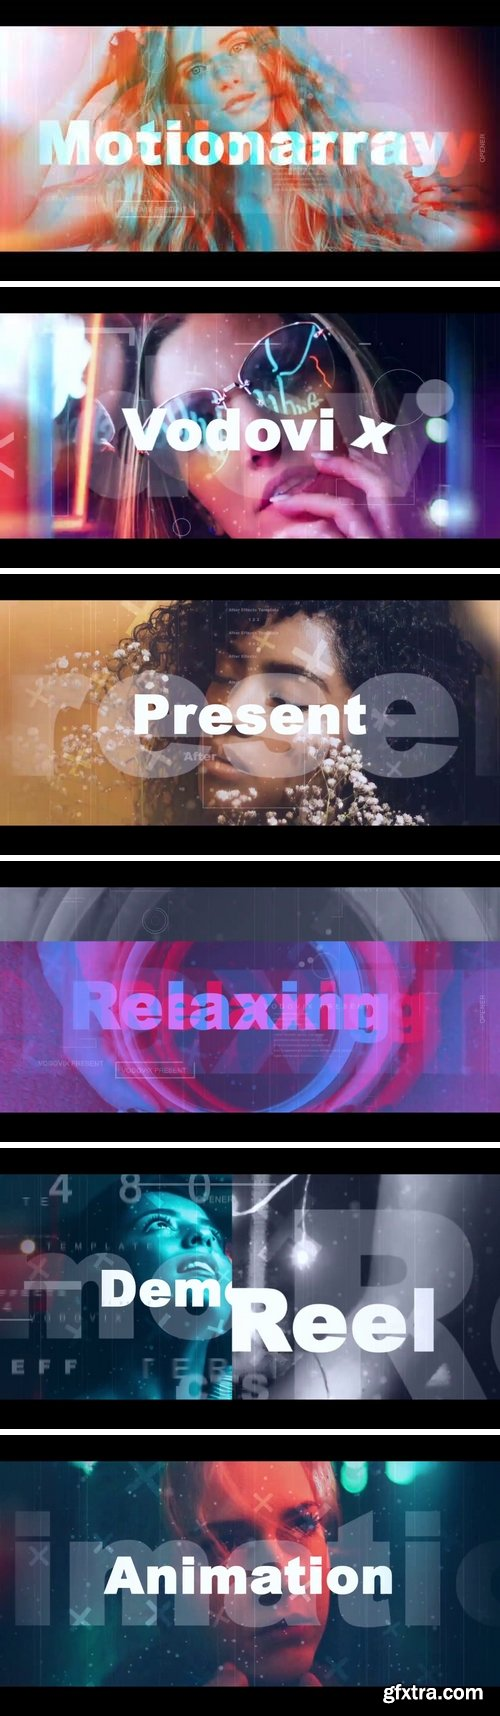 MA - Relaxing Opener V2 After Effects Templates 148257